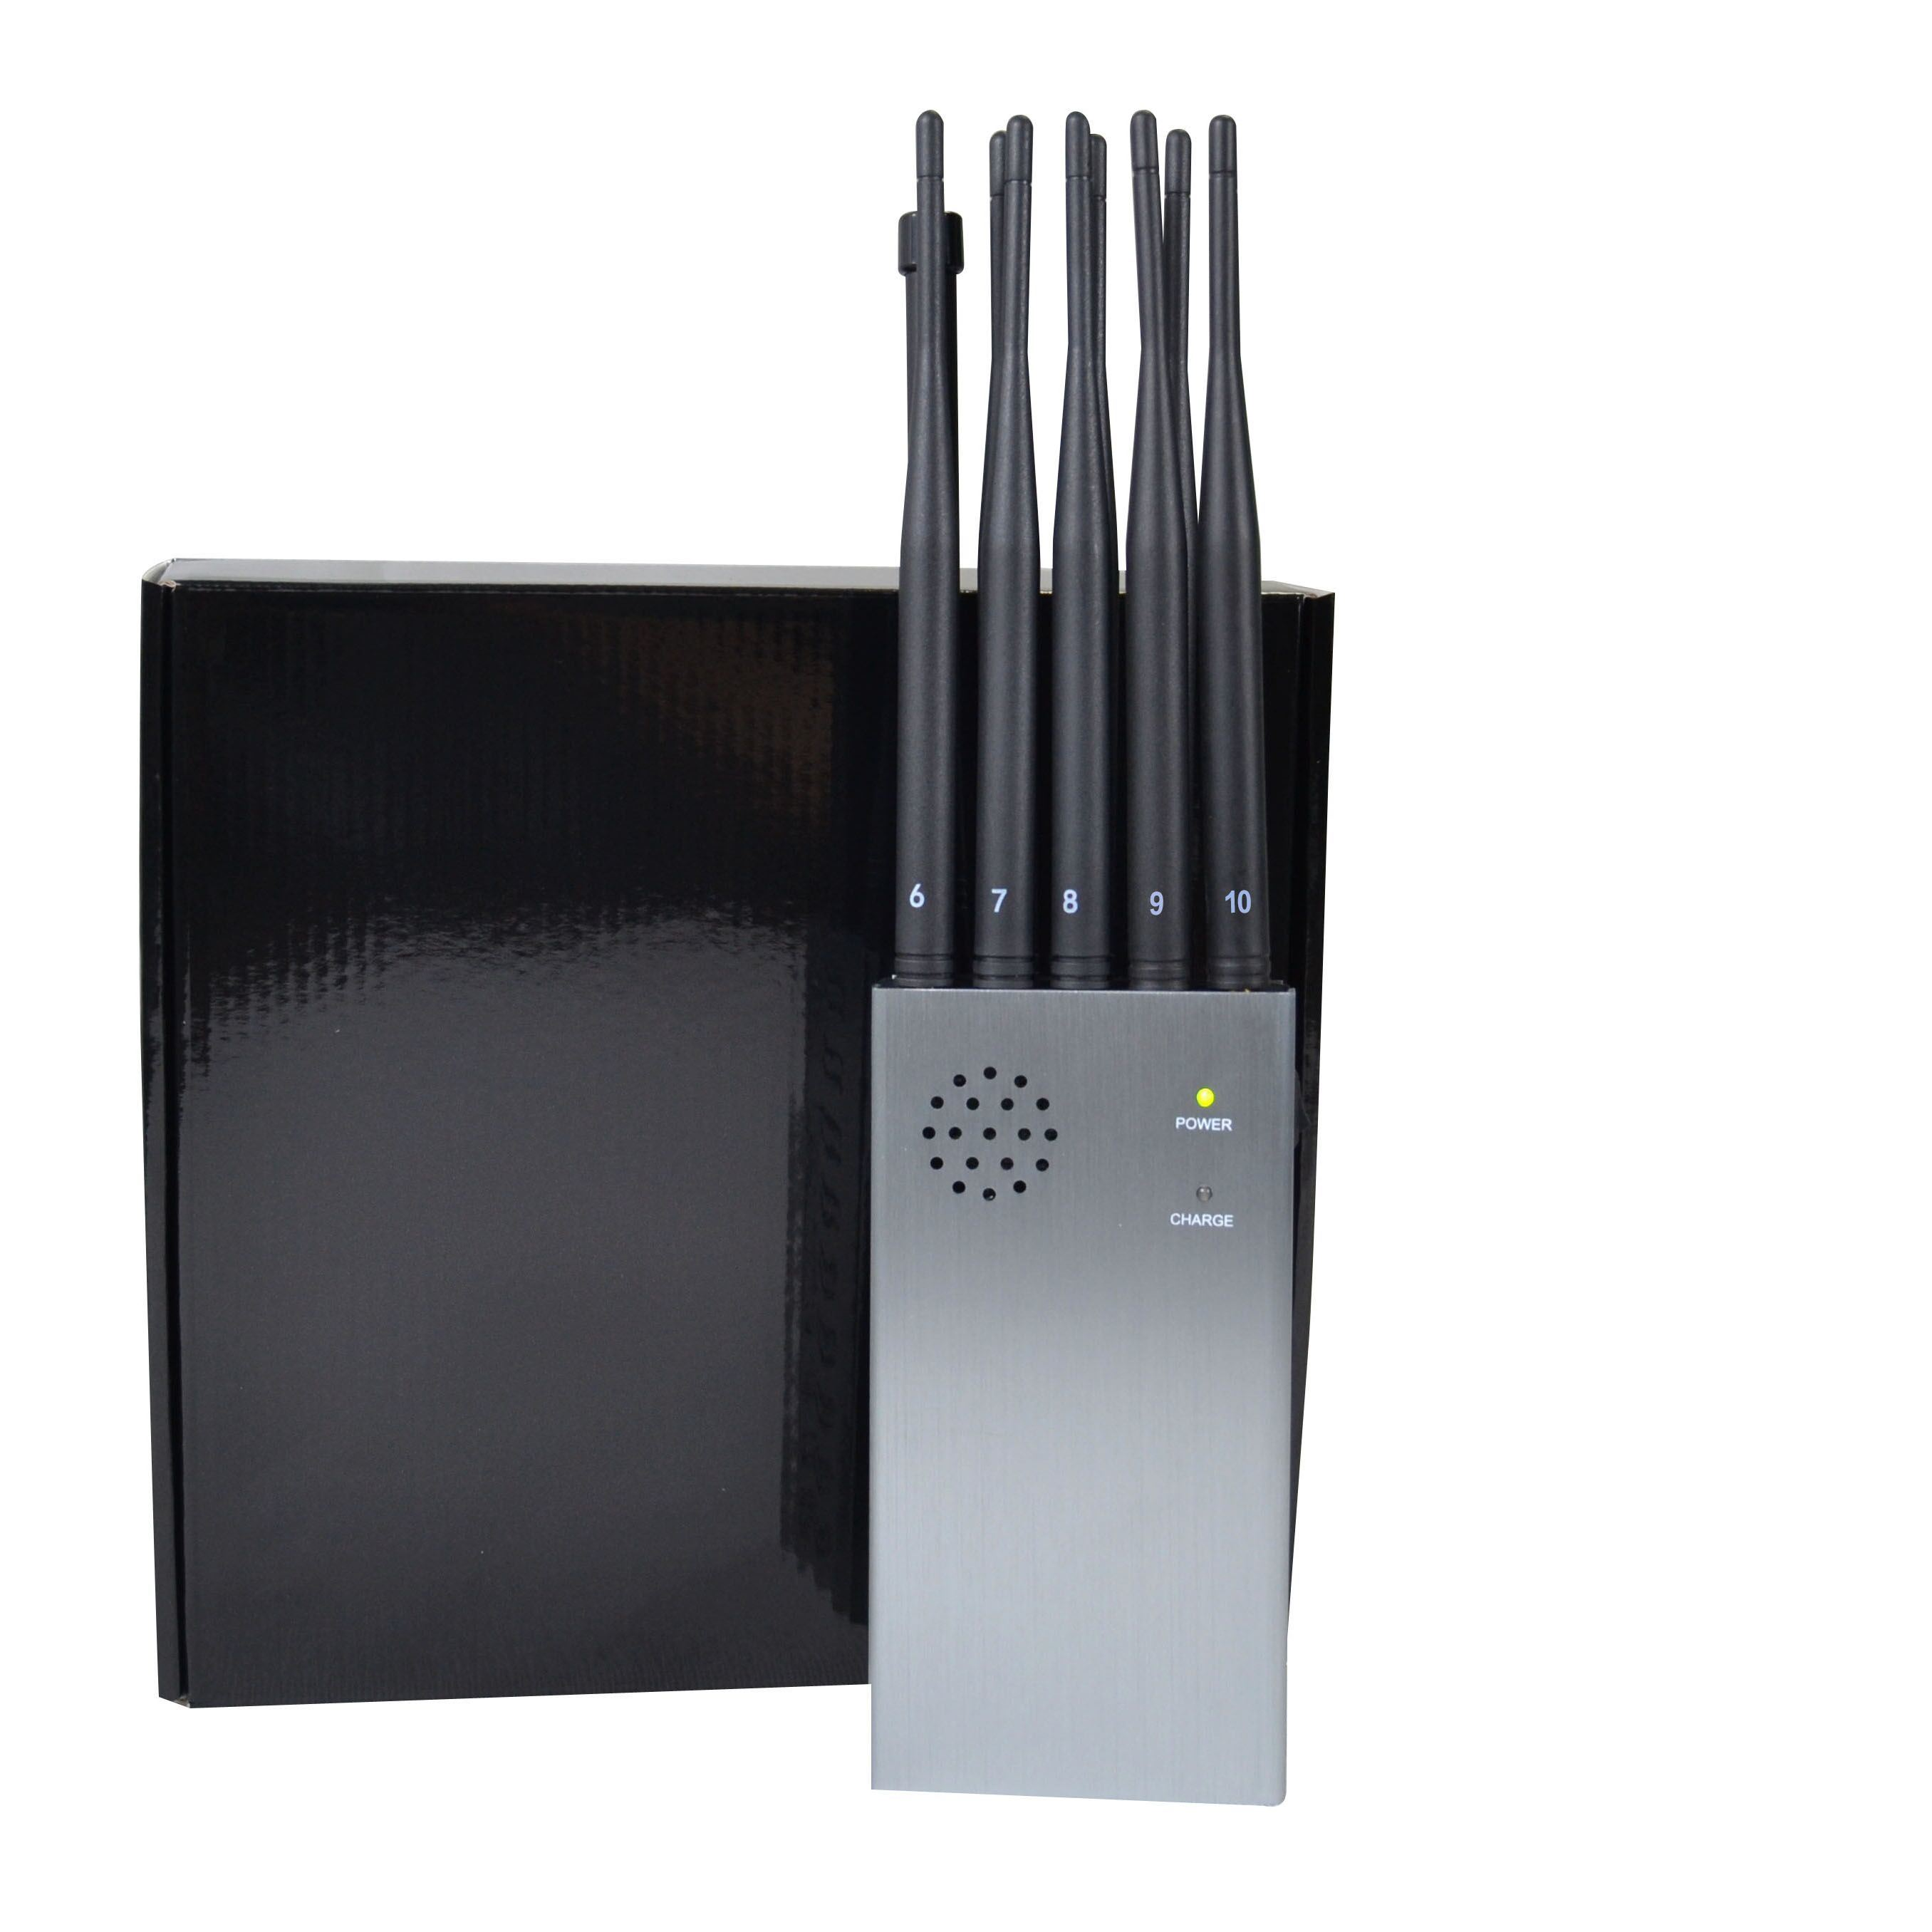 phone jammer detect gas - China Handled Portable Jammer with 10 Antennas Newest Model Updated Version with 8000mA - China 8000mA Battery Jammer, Large Volume Power Signal Blocker